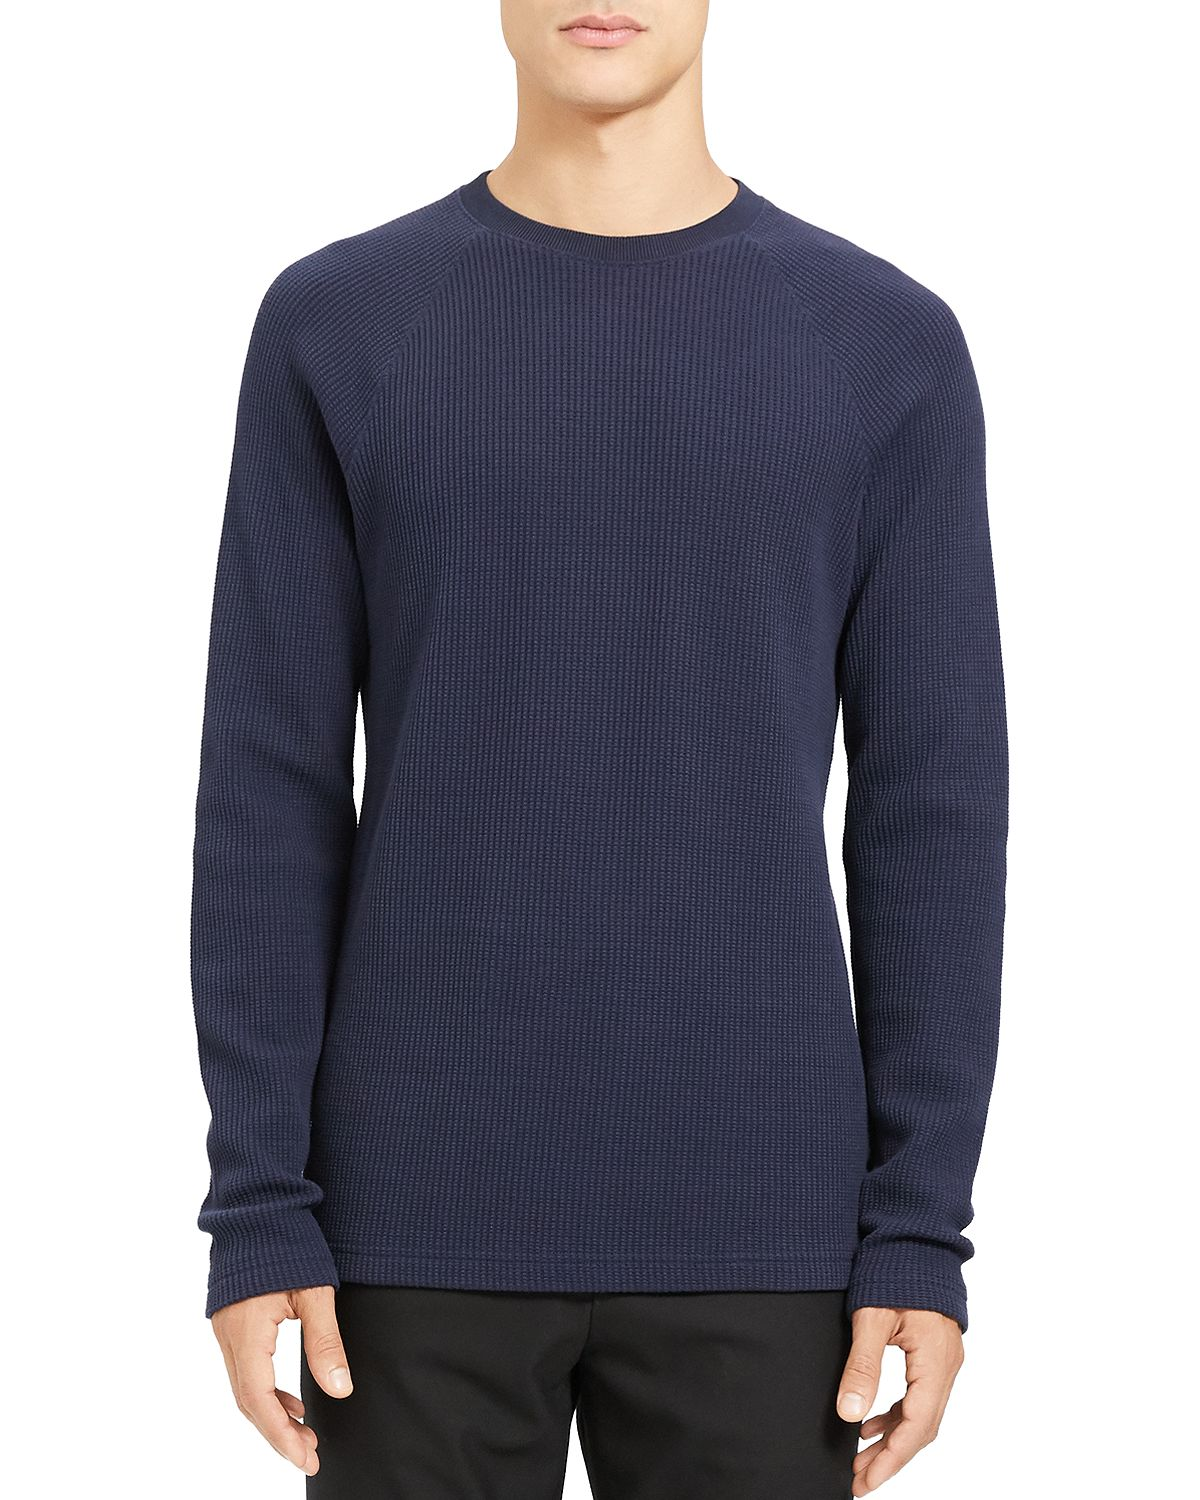 Theory River Waffle Knit Organic Cotton Sweater Eclipse